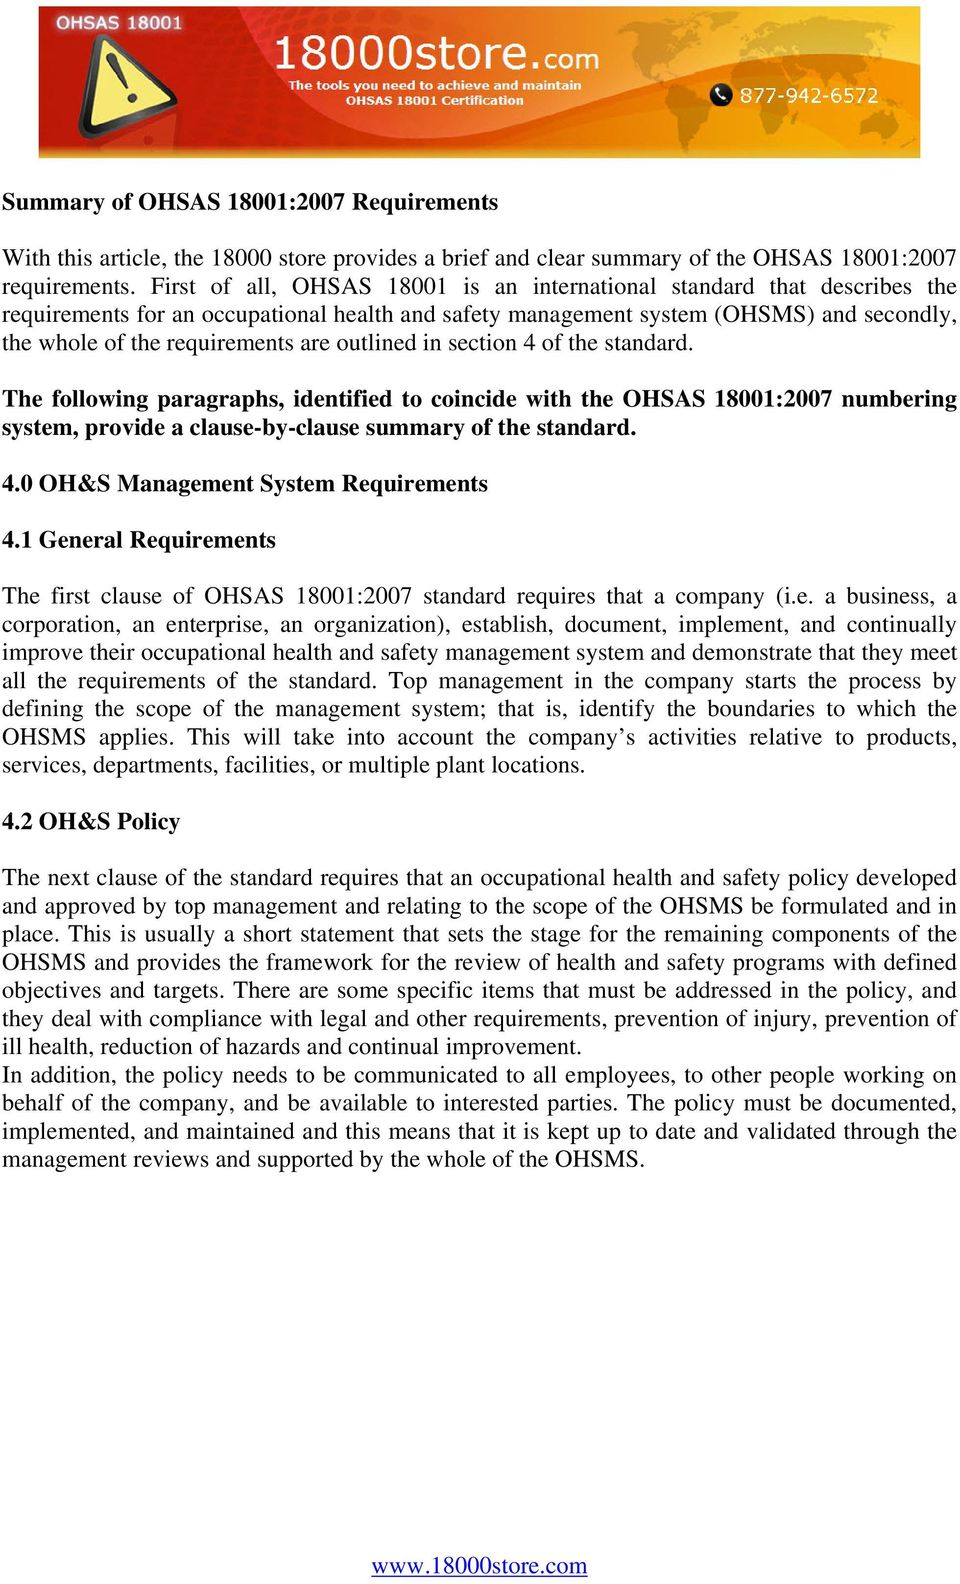 outlined in section 4 of the standard. The following paragraphs, identified to coincide with the OHSAS 18001:2007 numbering system, provide a clause-by-clause summary of the standard. 4.0 OH&S Management System Requirements 4.